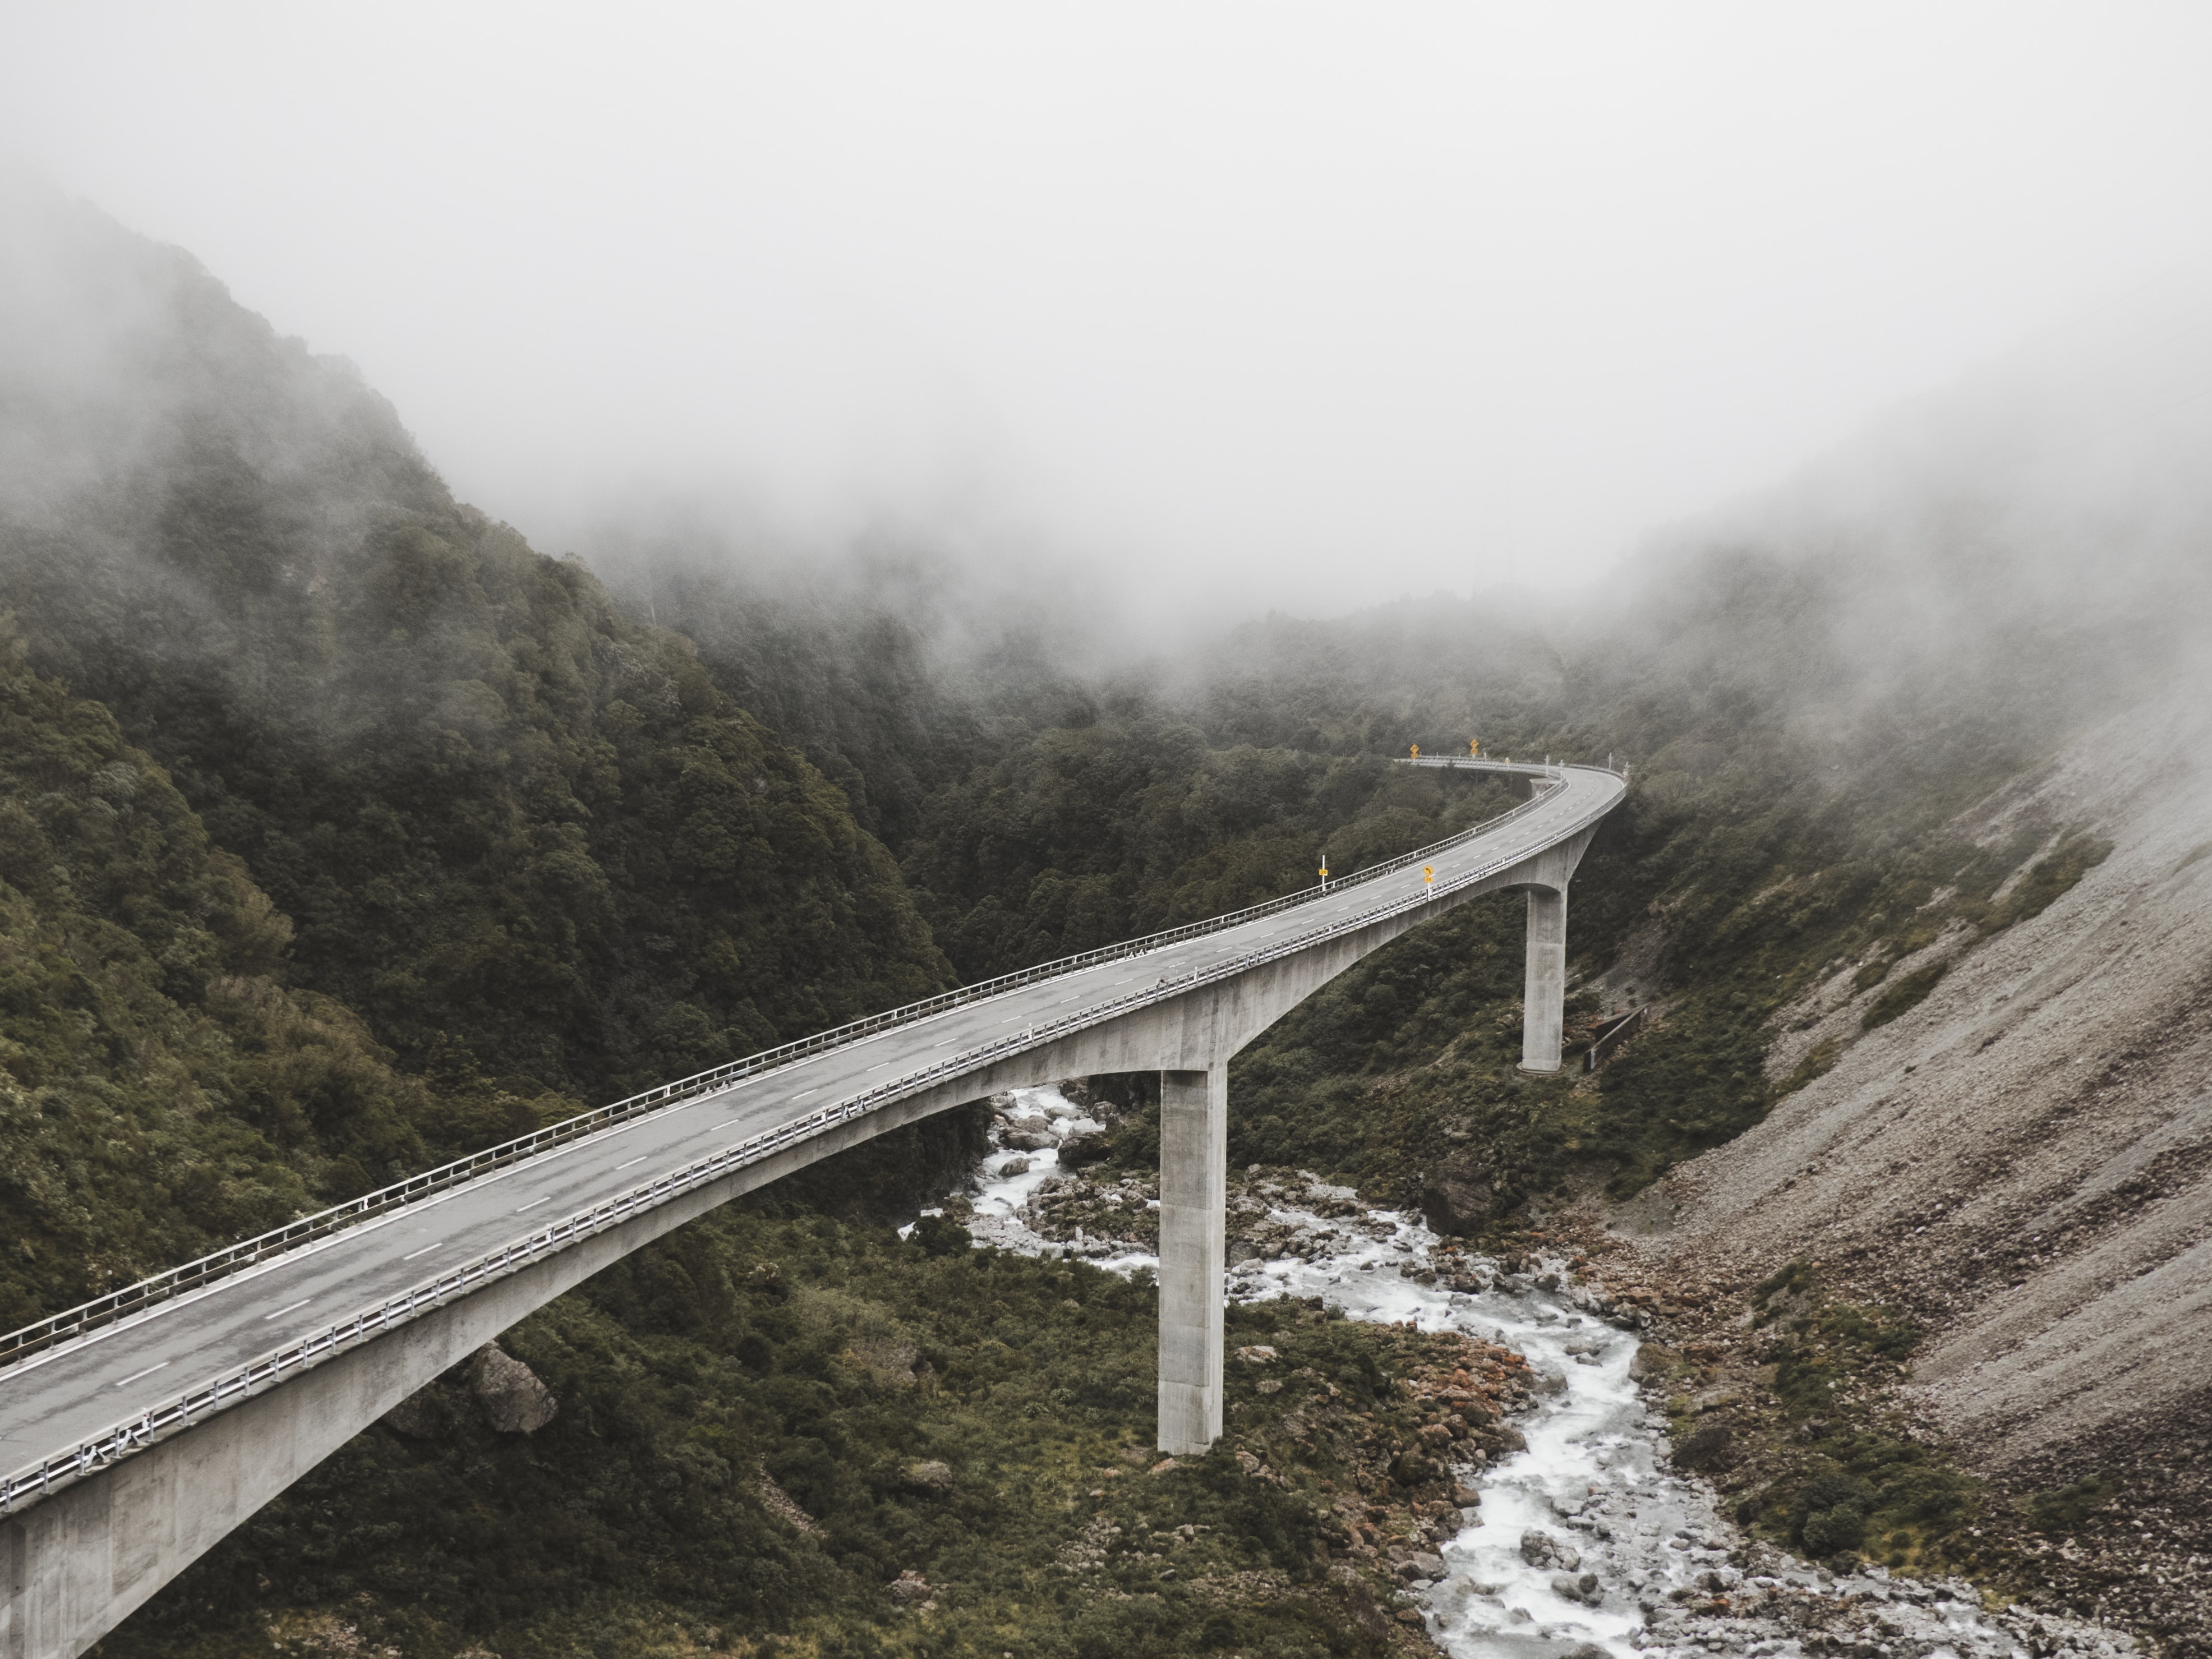 concrete bridge near mountains surrounded by fog